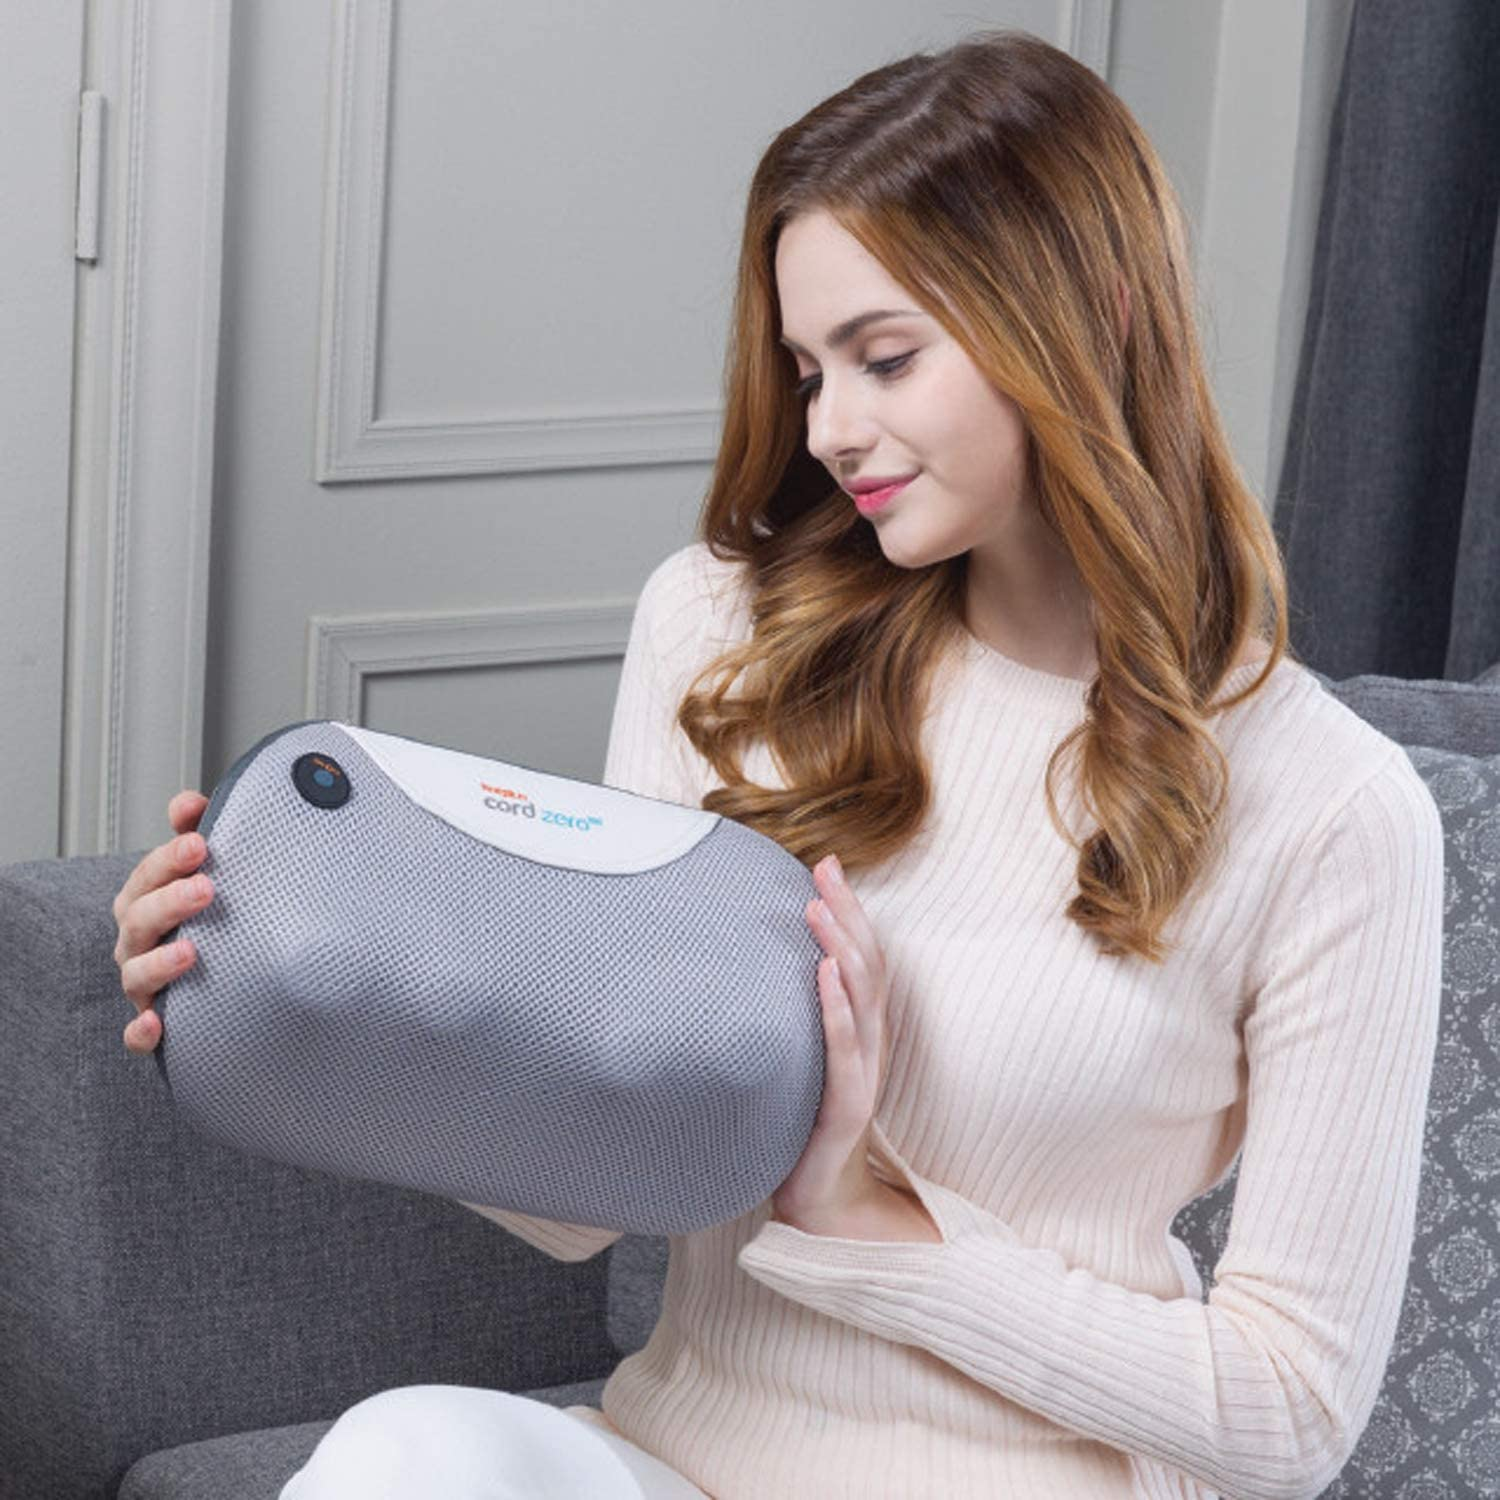 Hueplus Cordless On-The-Go All Purpose Massage Pillow with Heat for Back, Neck, Legs, Calves and Shoulders, Deep Massage for Pain Relief and Soreness, Convenient Use at Home, Office, Car Cordzero 60